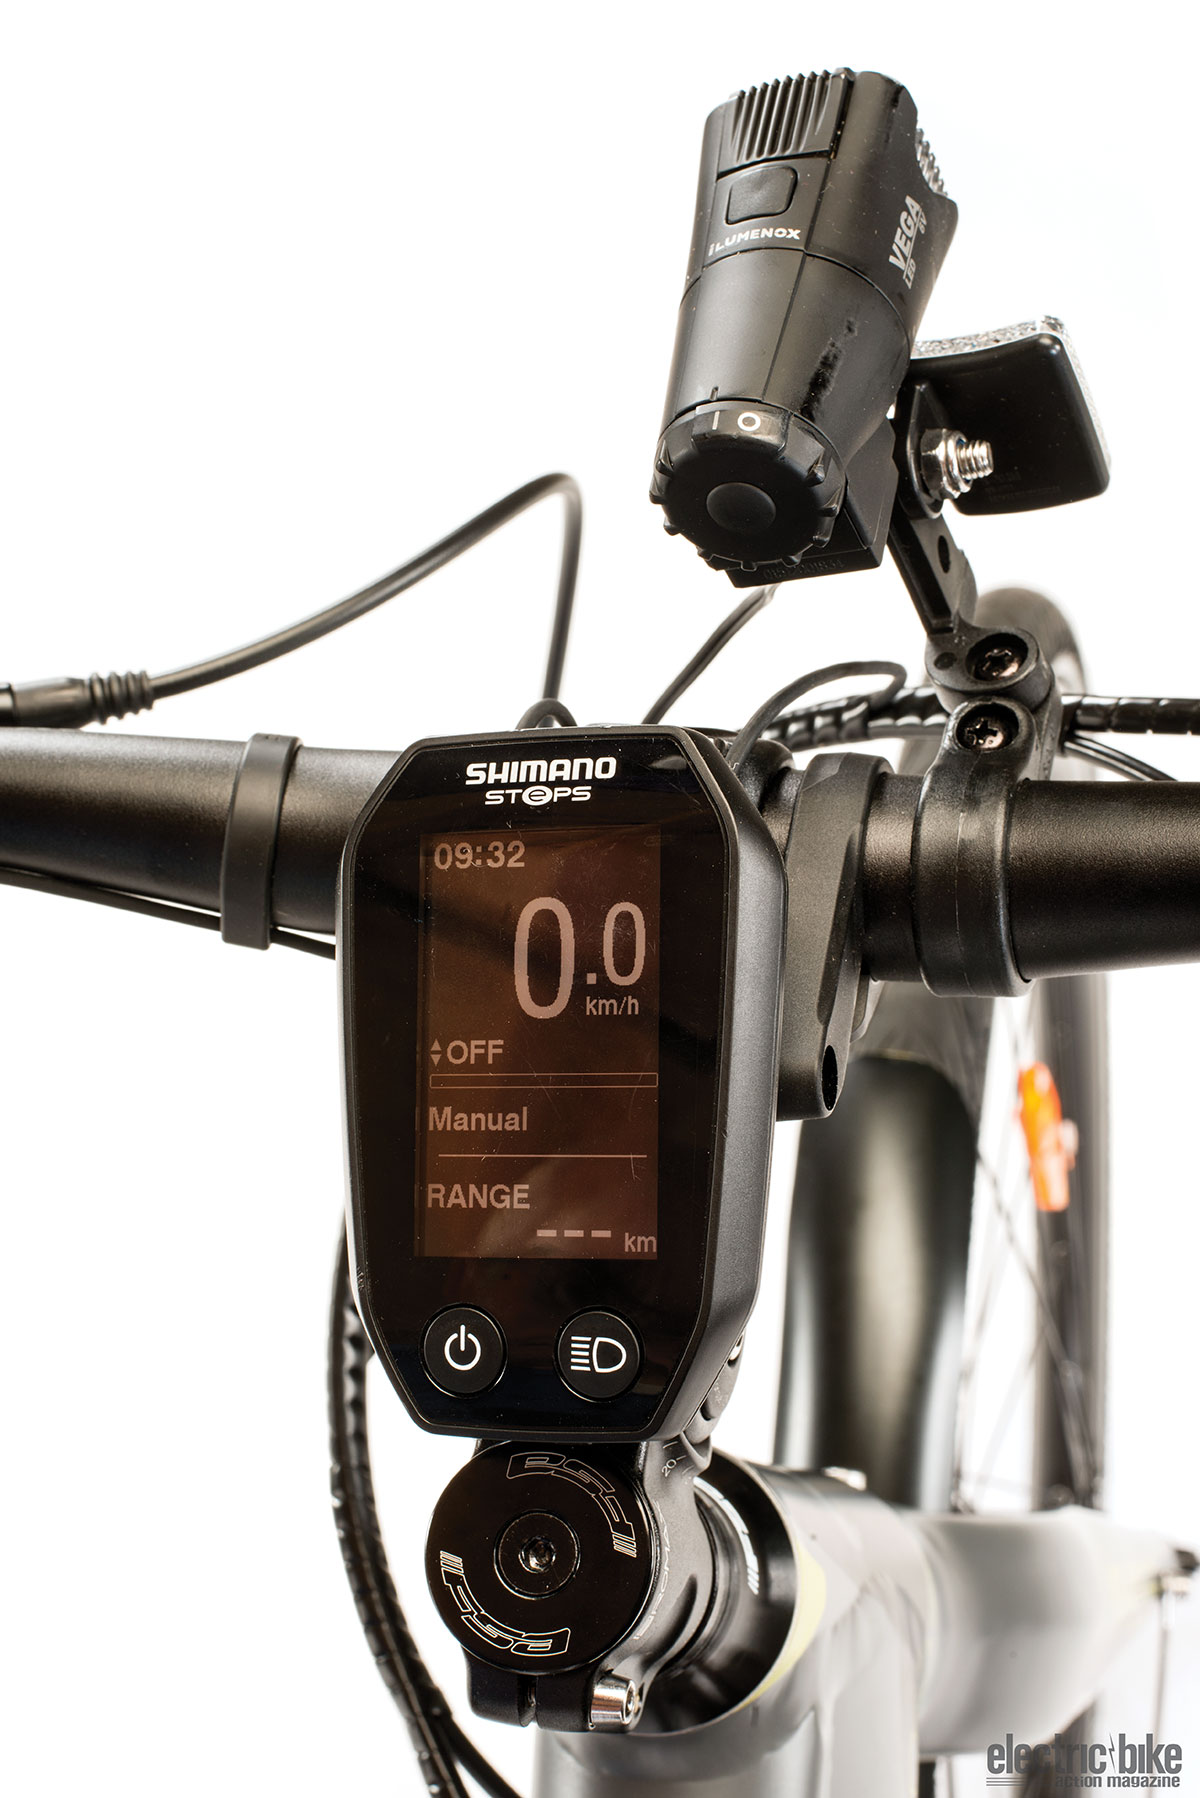 Mounting the Shimano STEPS display on the stem keeps it tidy and out of the way yet perfectly visible.